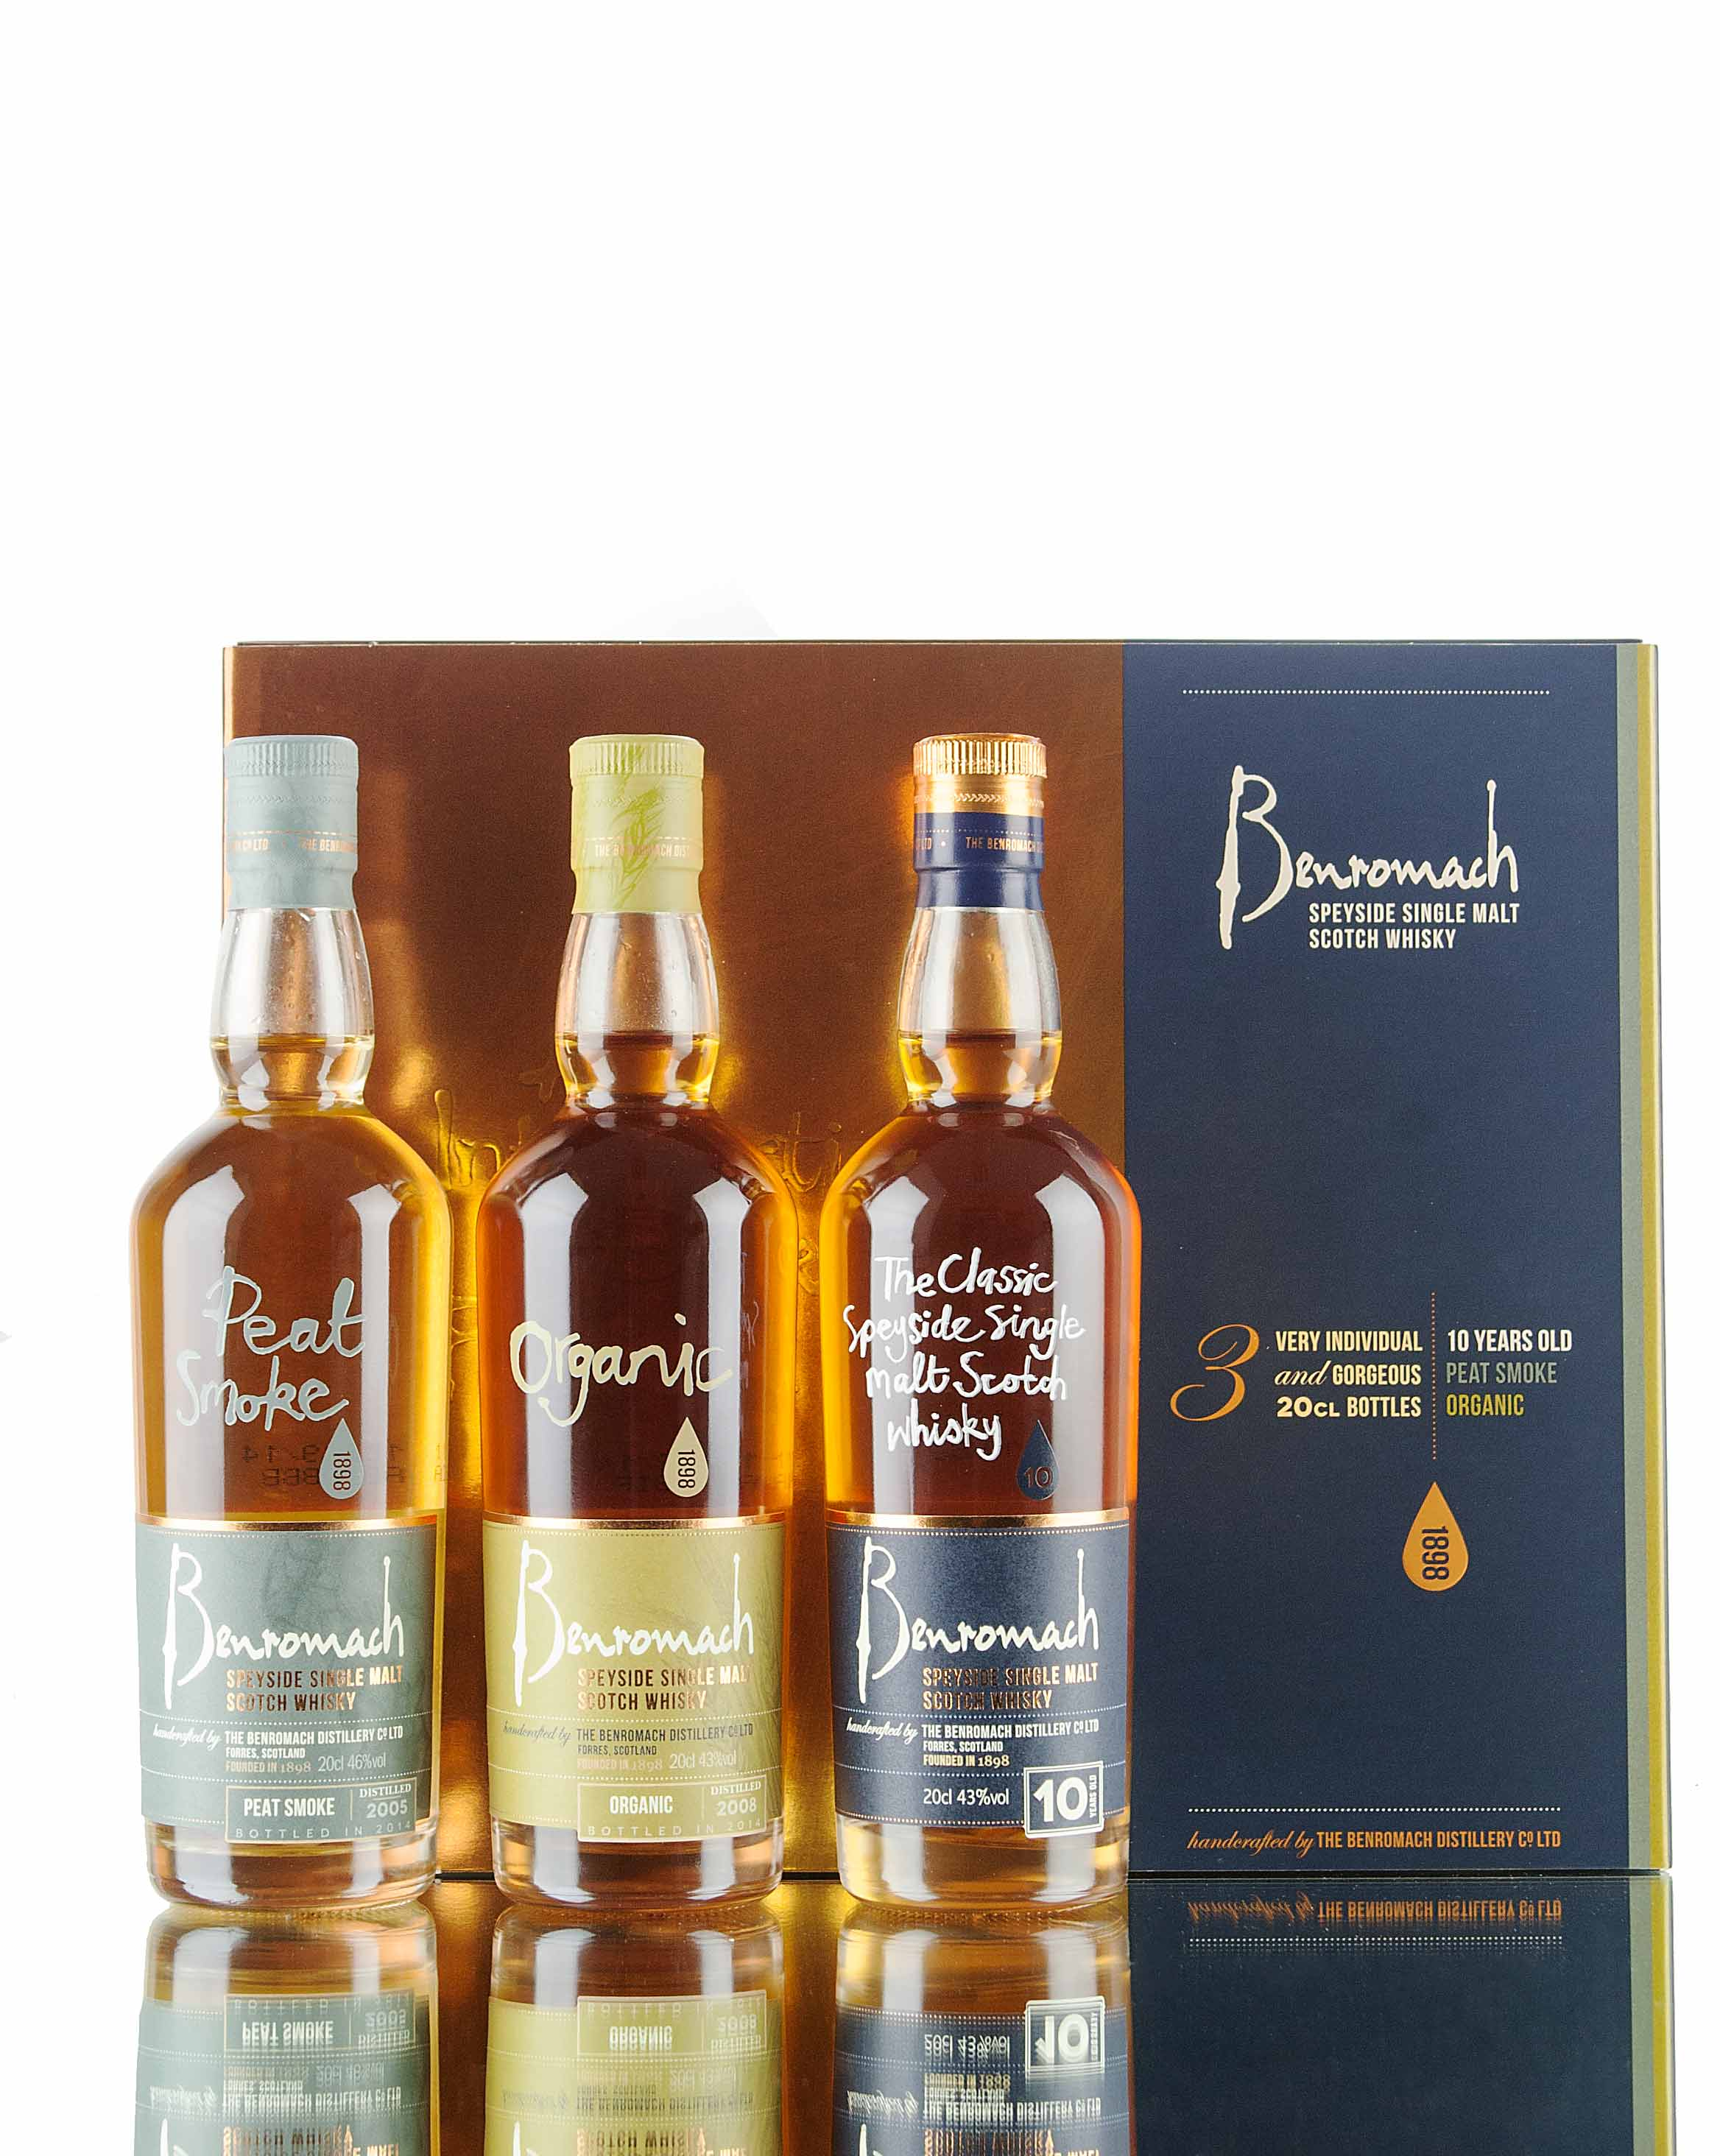 Benromach Gift Pack - Peat Smoke + Organic + 10 Year Old